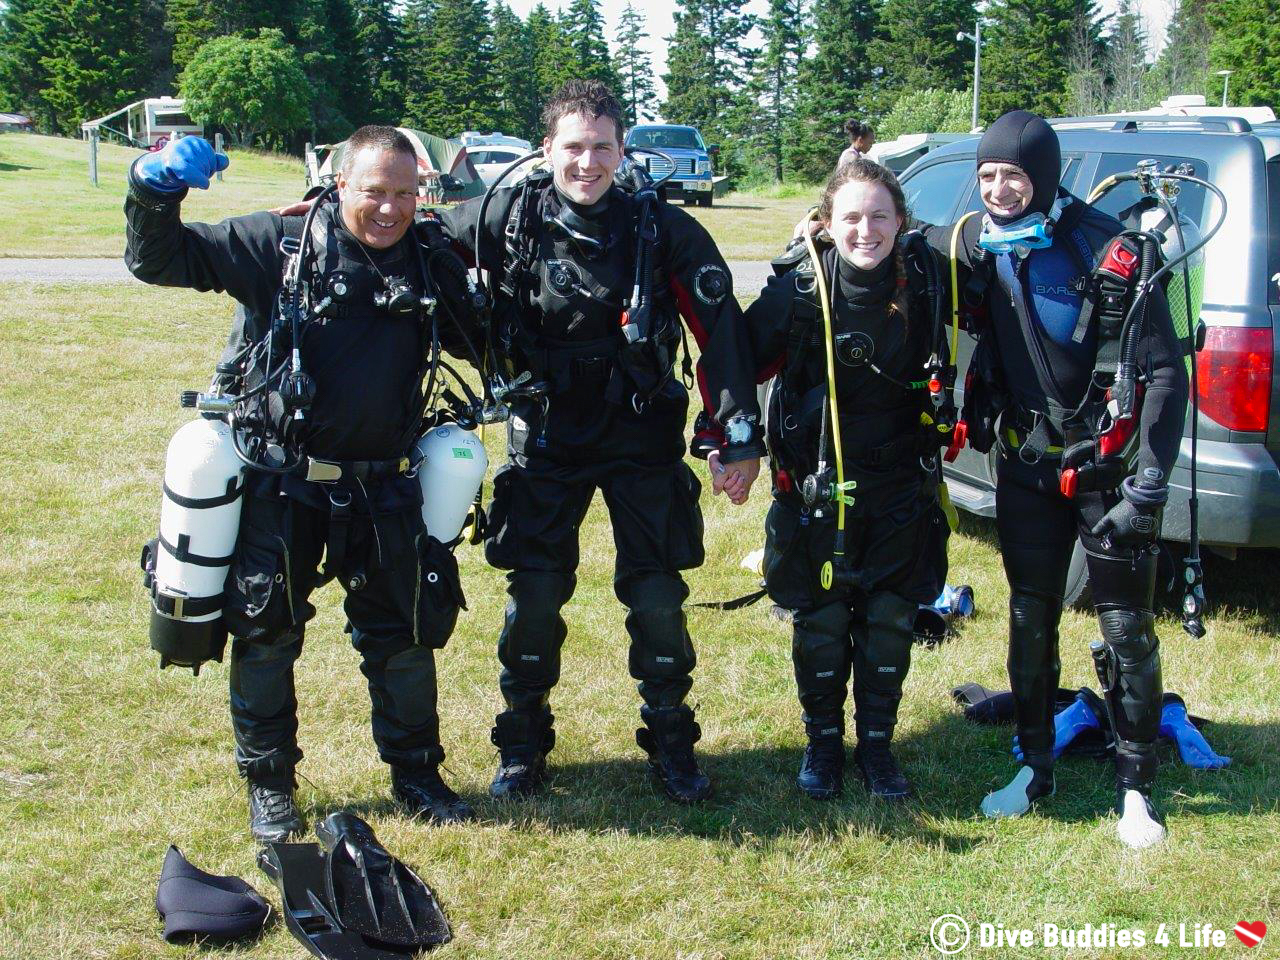 A Team Of Scuba Divers After Completing Their Advanced Open Water Certification With The PADI Scuba Diving Agency